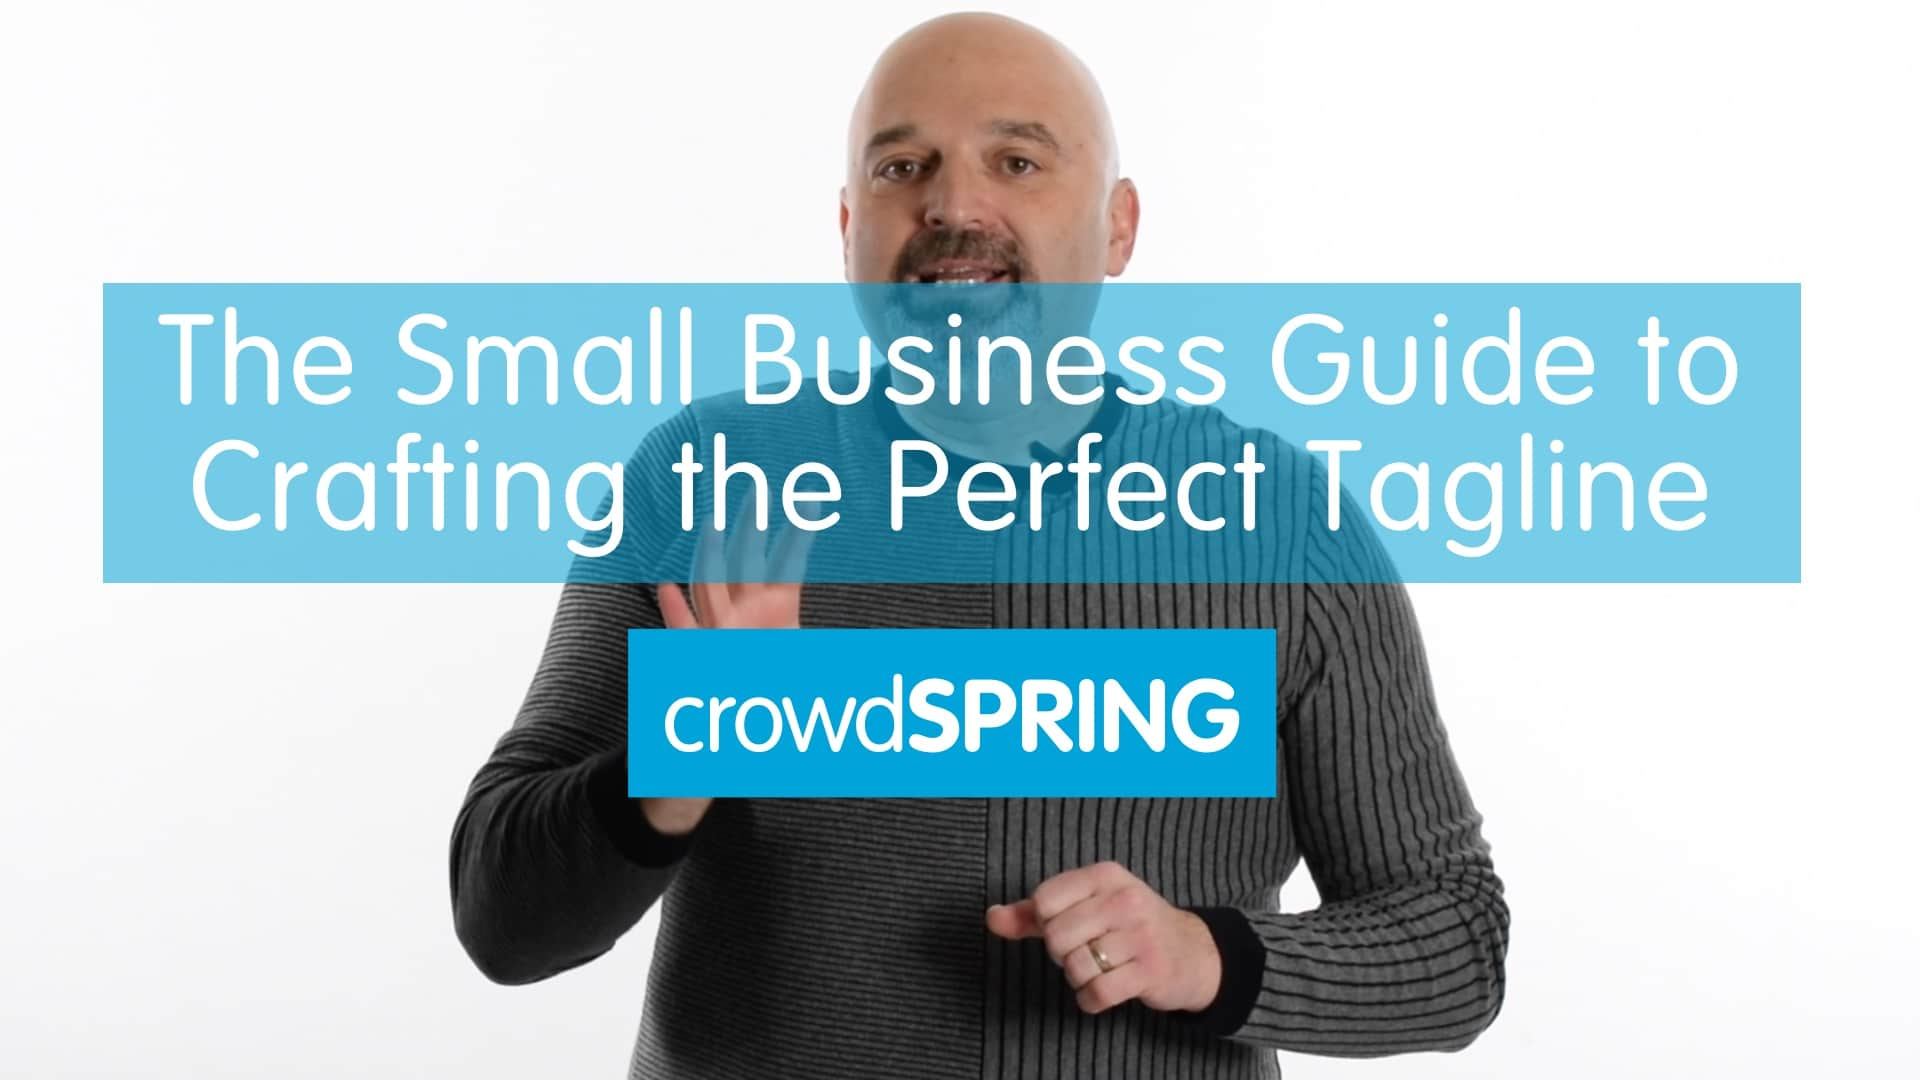 The Small Business Guide to Crafting The Perfect Tagline or Slogan